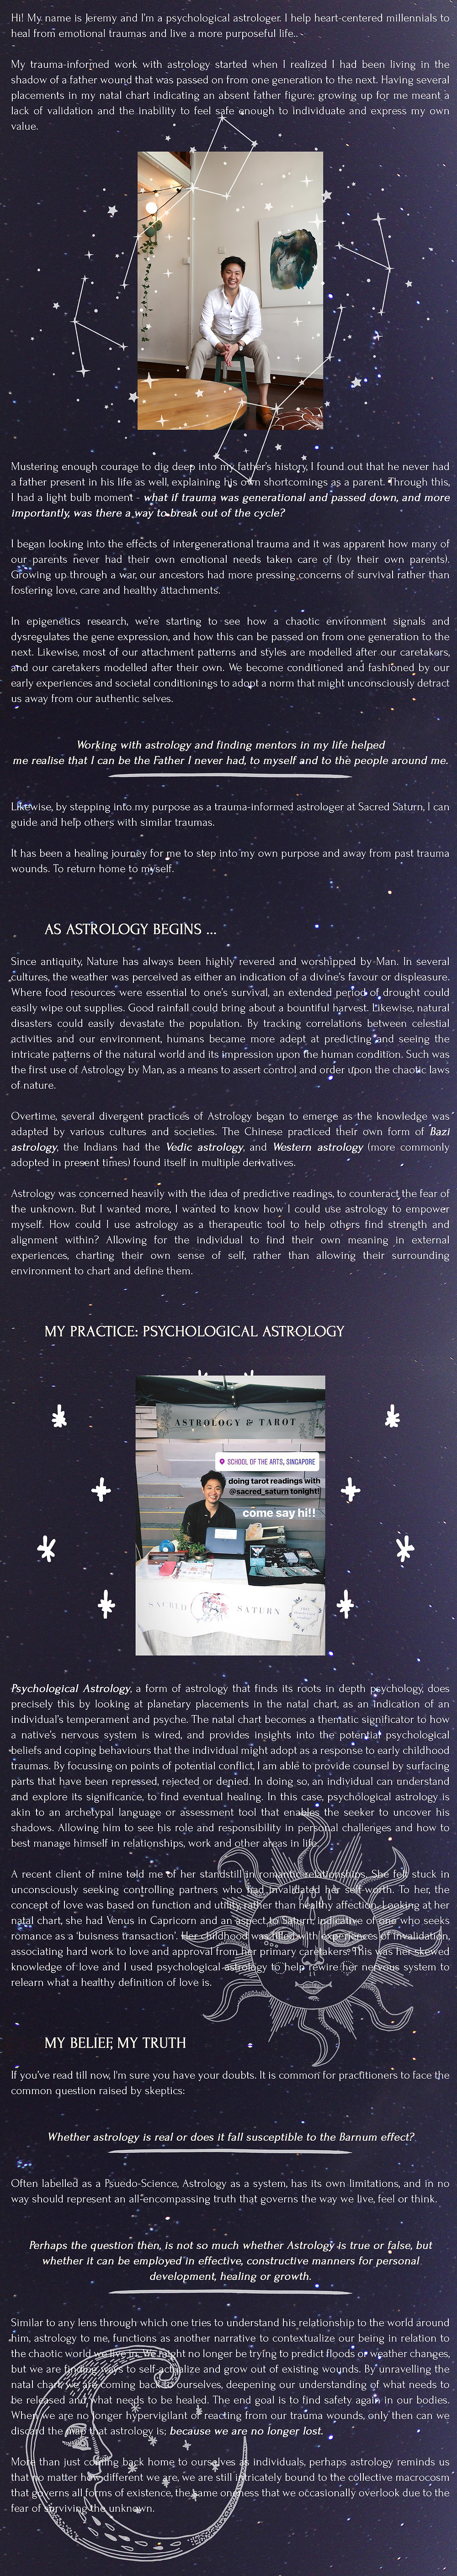 blurb magazine. blurbmag. astrology: the map back home to self. Jeremy Tan. opinion. @blurb.mag